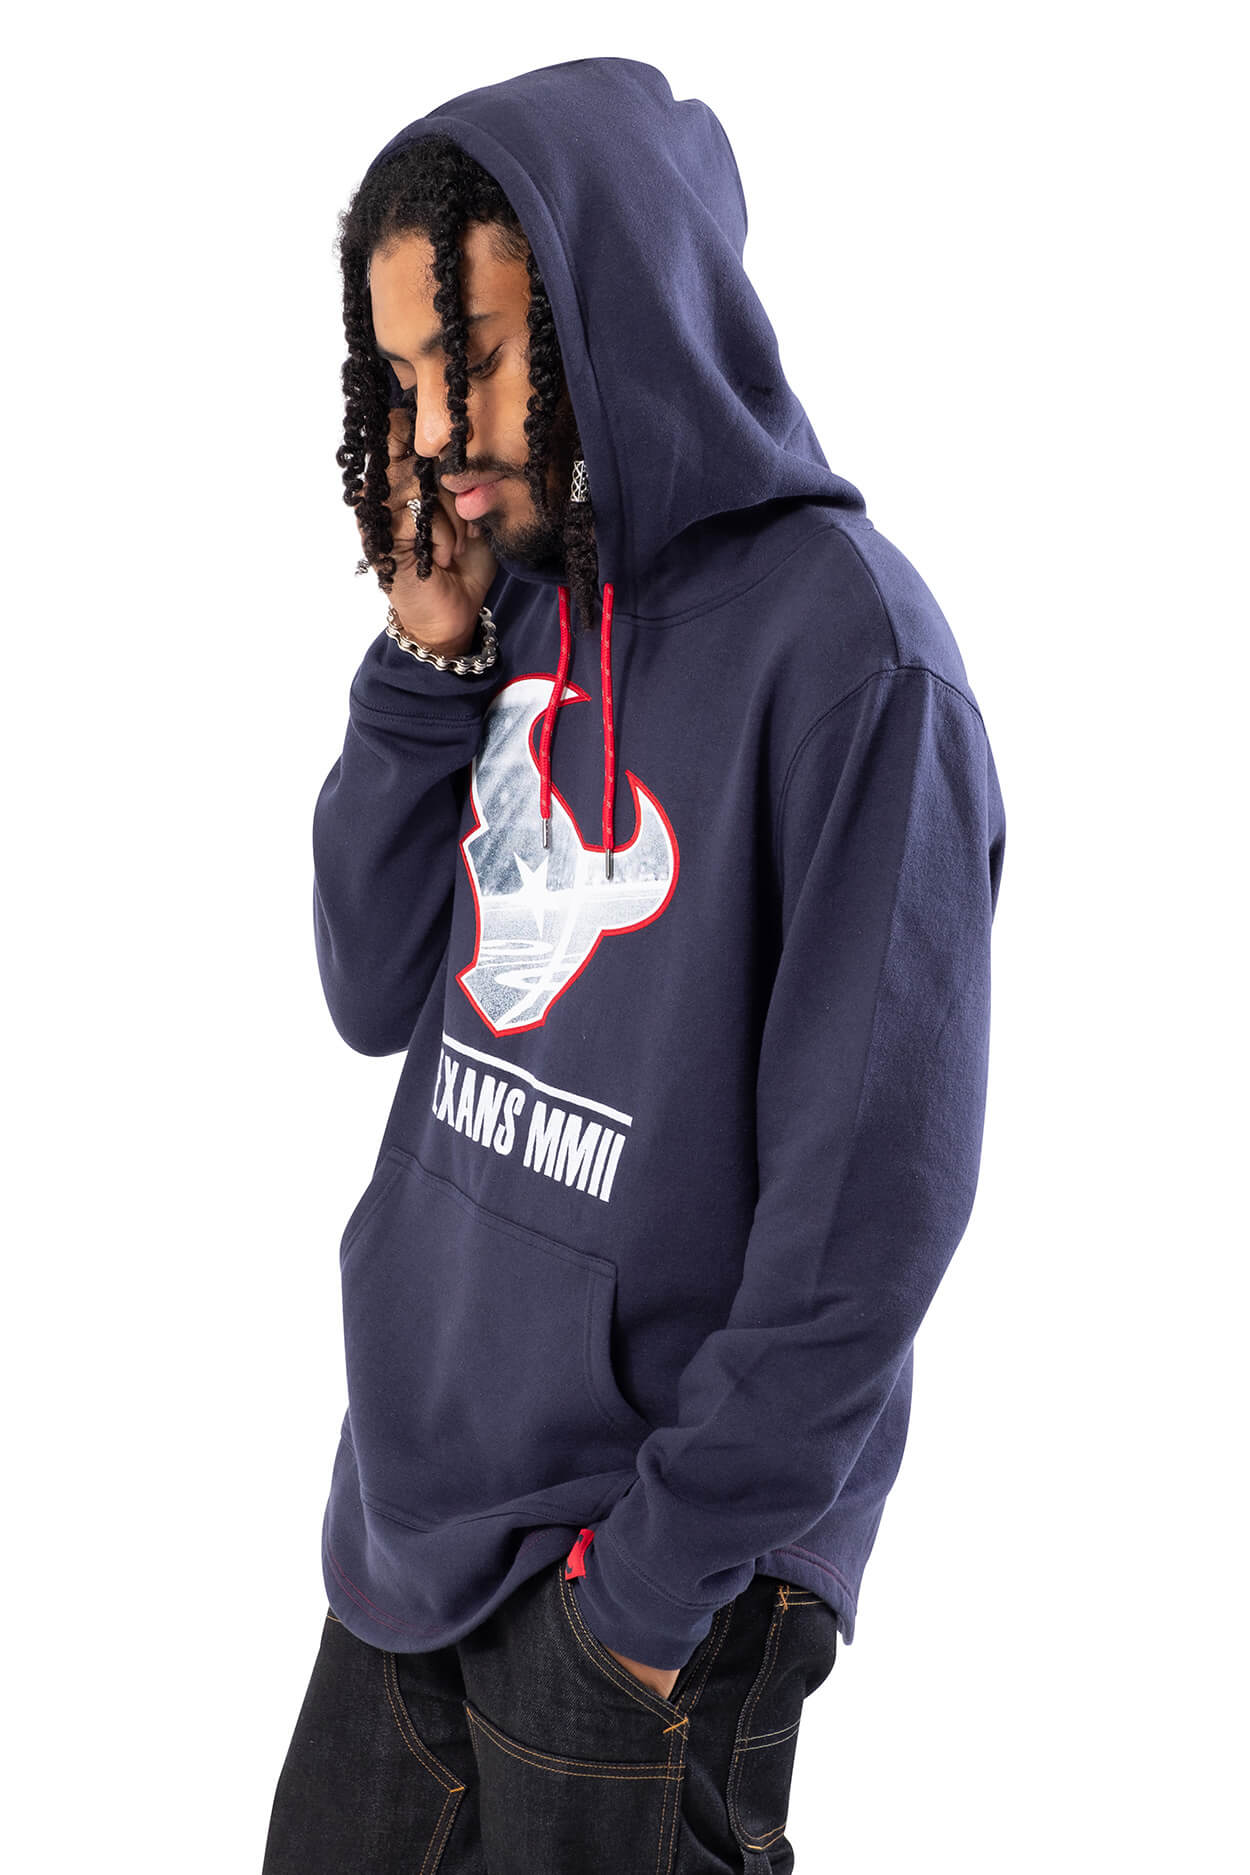 NFL Houston Texans Men's Embroidered Hoodie|Houston Texans